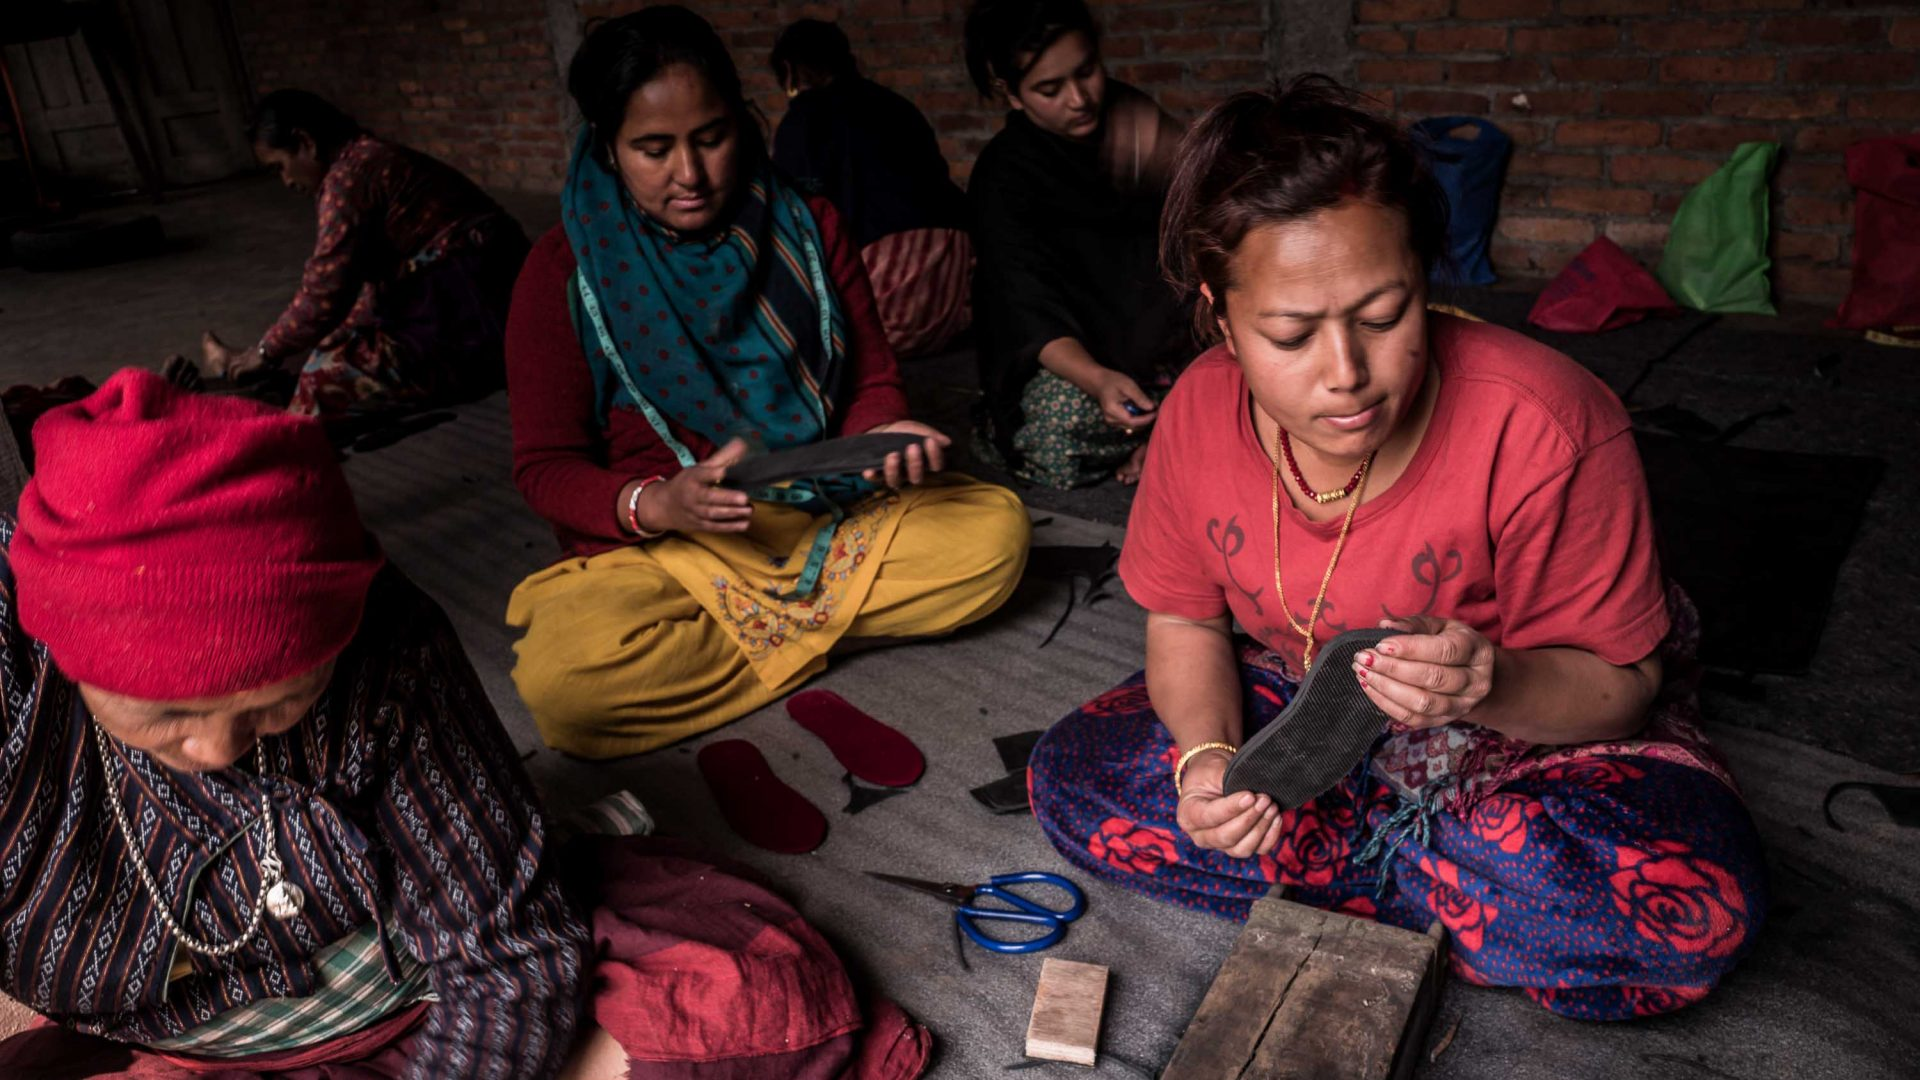 Tami Maja Maharjan and other women take part in shoe-making training designed by to help local widows acquire independence, in the Newari village of Sunakoti, Kathmandu valley.